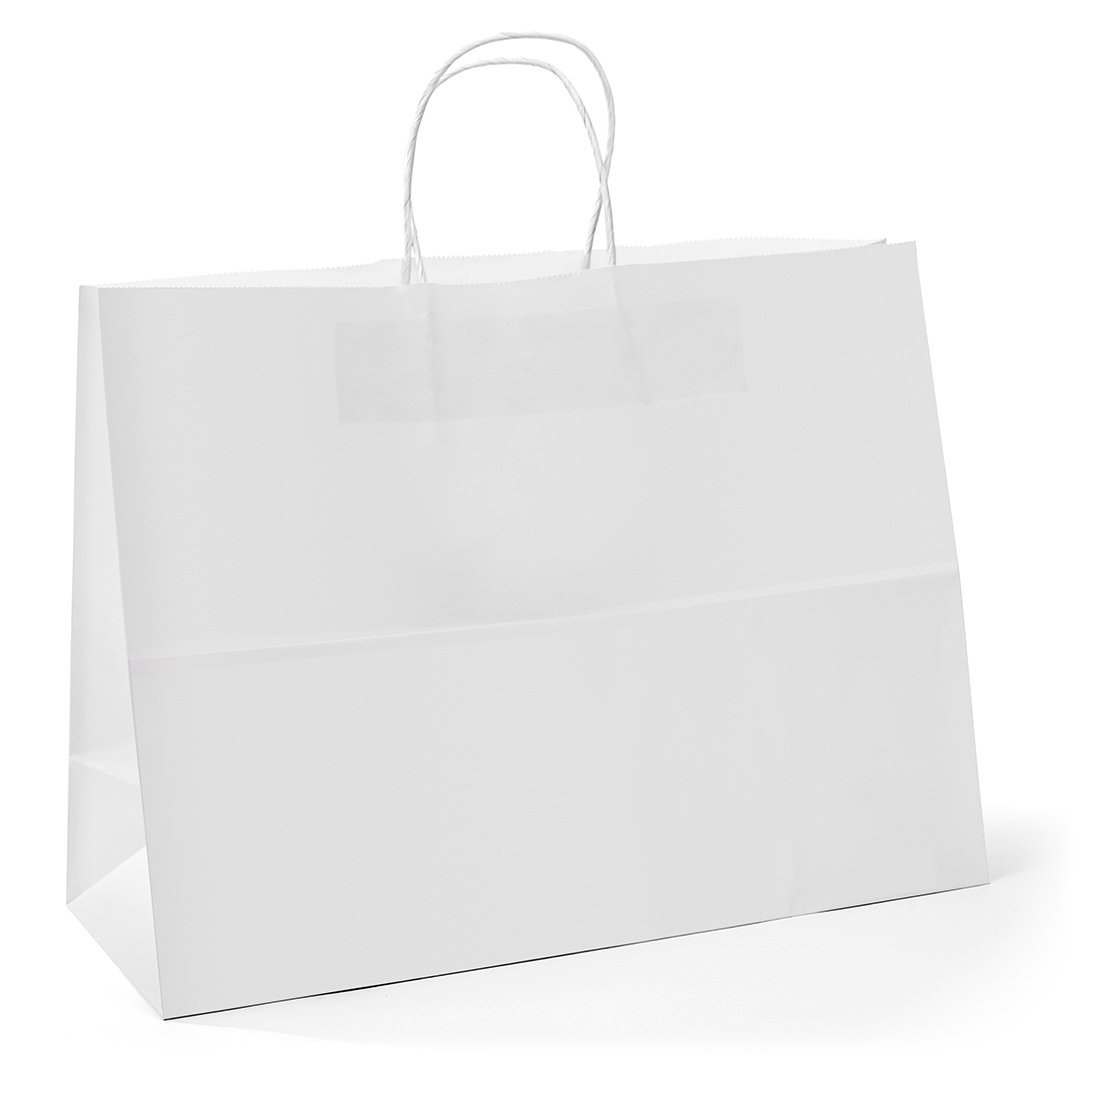 GSSUSA 16x6x12 Inches 100Pc Kraft Paper Bags with Handles Bulk White Paper Shopping Bags Grocery Bags Mechandise Retail Bags, 100% Recyclable Large Paper Gift Bags 100% Recyclable Paper by GSSUSA